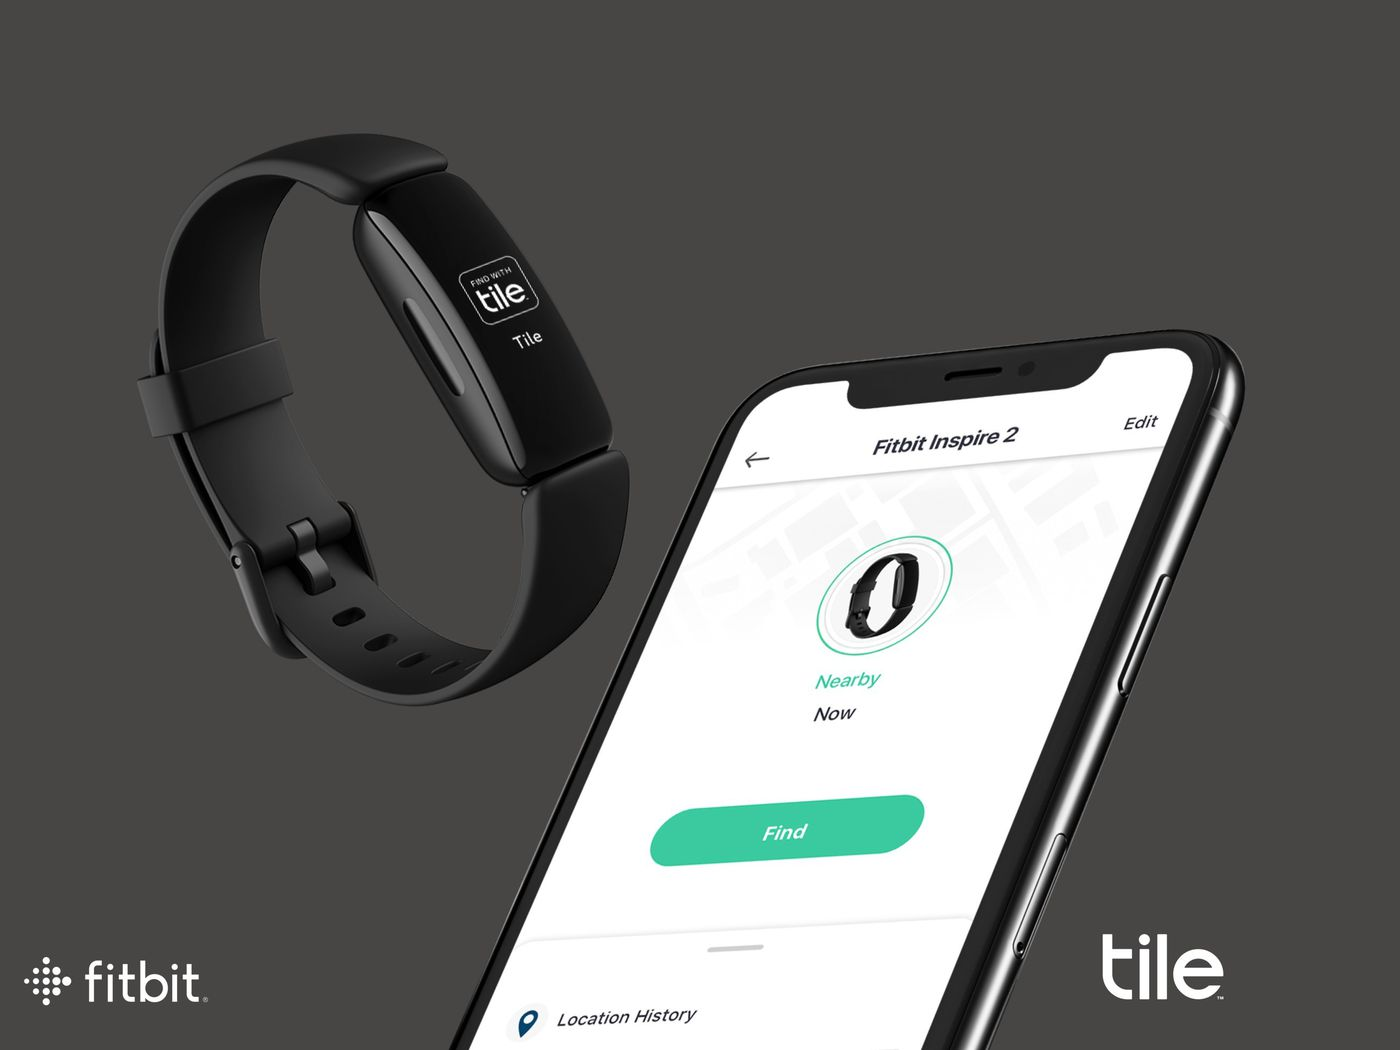 fitbit adds tile tracking feature to